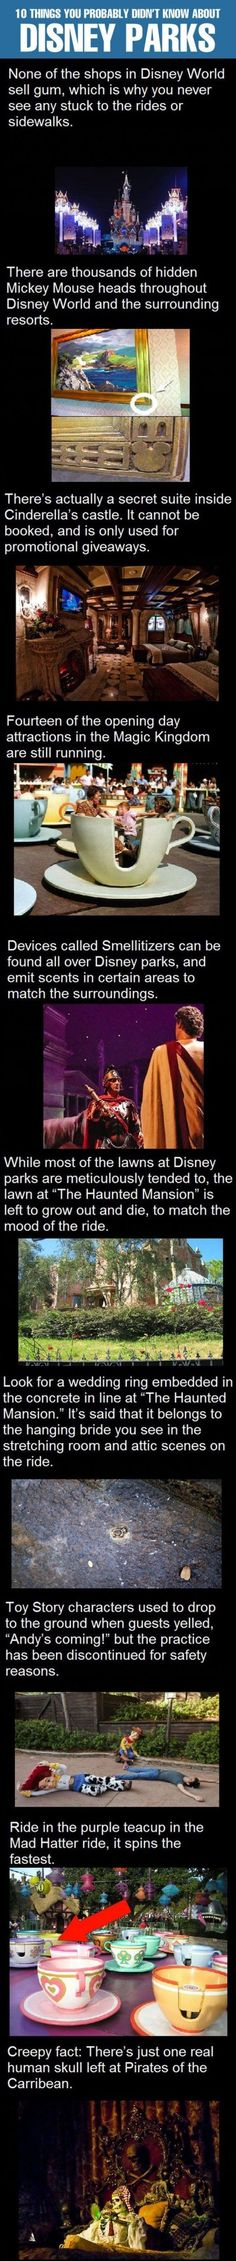 Cool Disney Fact Comp  // funny pictures - funny photos - funny images - funny pics - funny quotes - #lol #humor #funnypictures